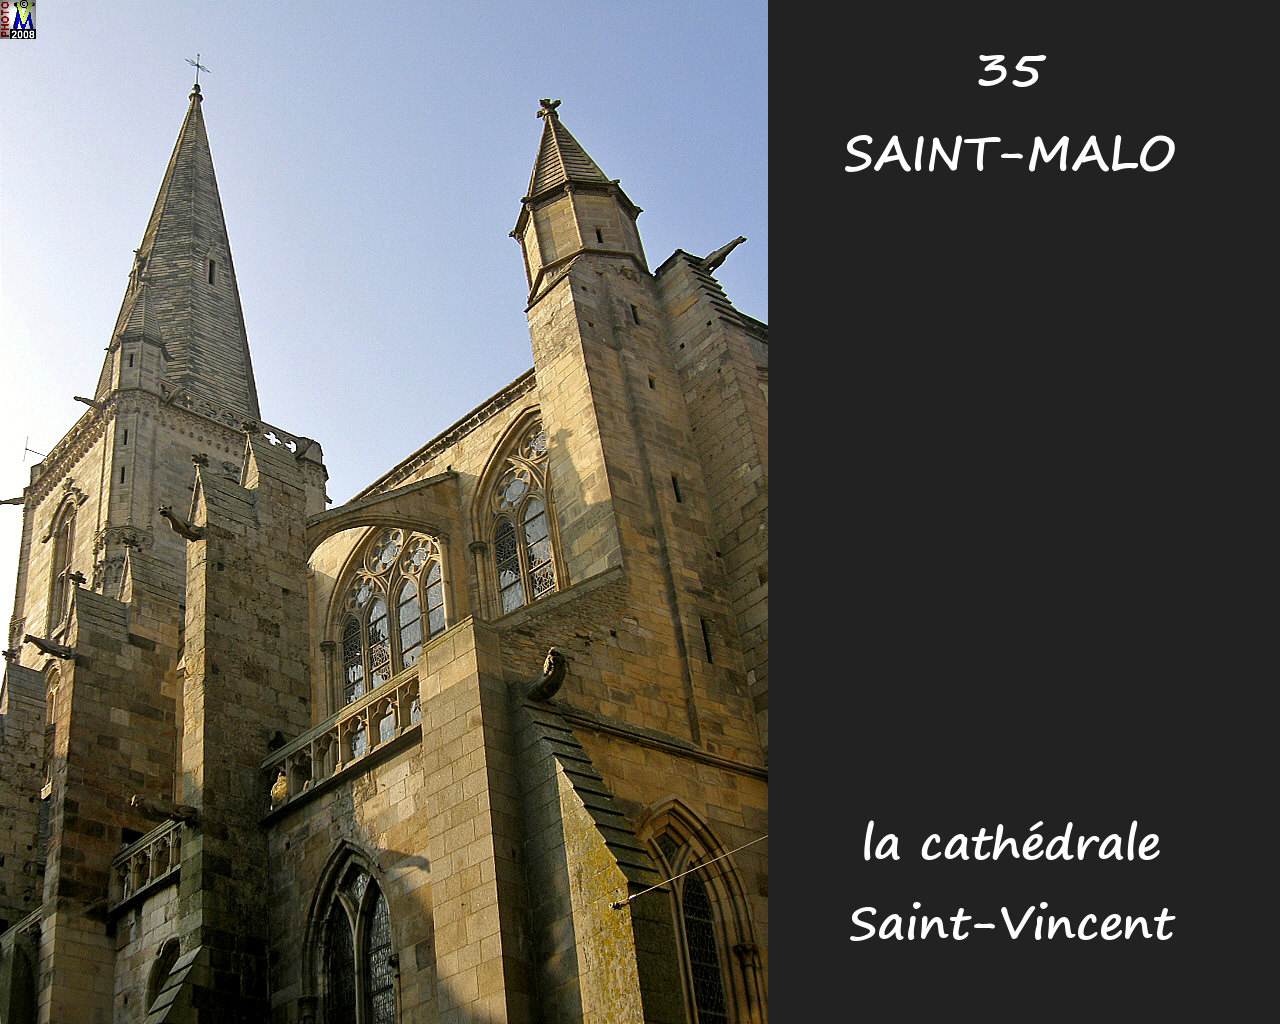 35StMALO_cathedrale_102.jpg